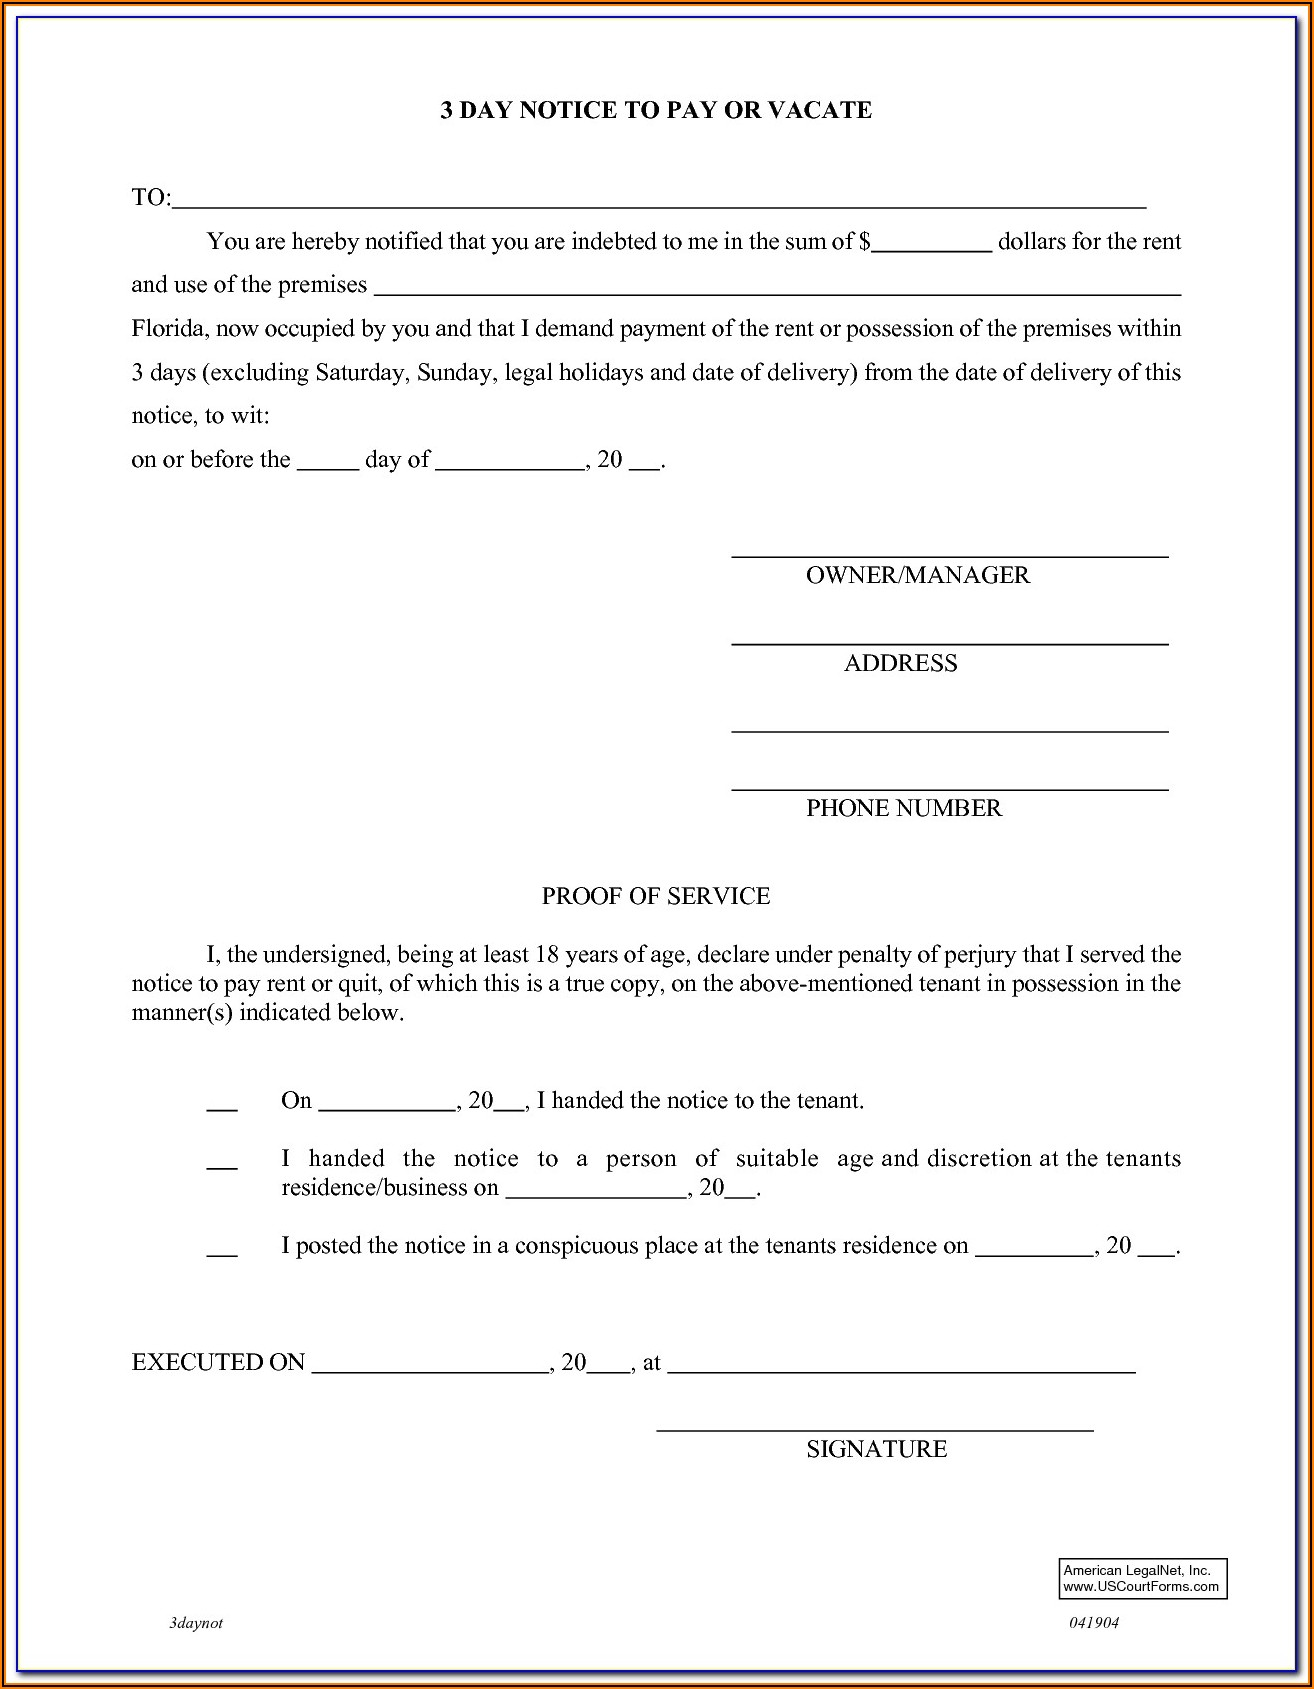 Oregon Landlord Eviction Forms